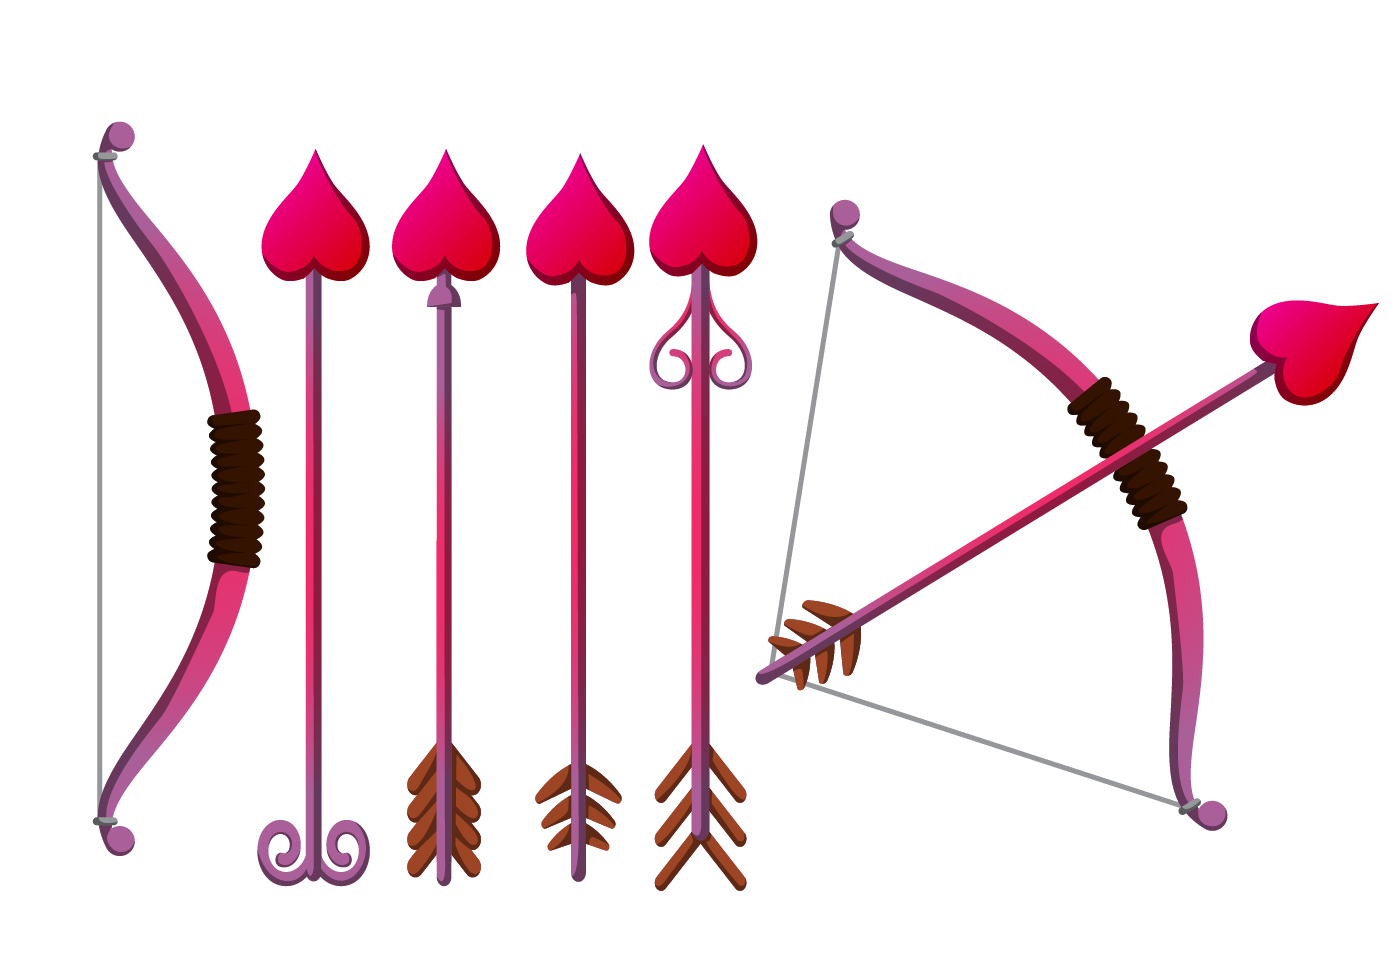 Cupid's Bow Vector Set - Download Free Vector Art, Stock Graphics & Images